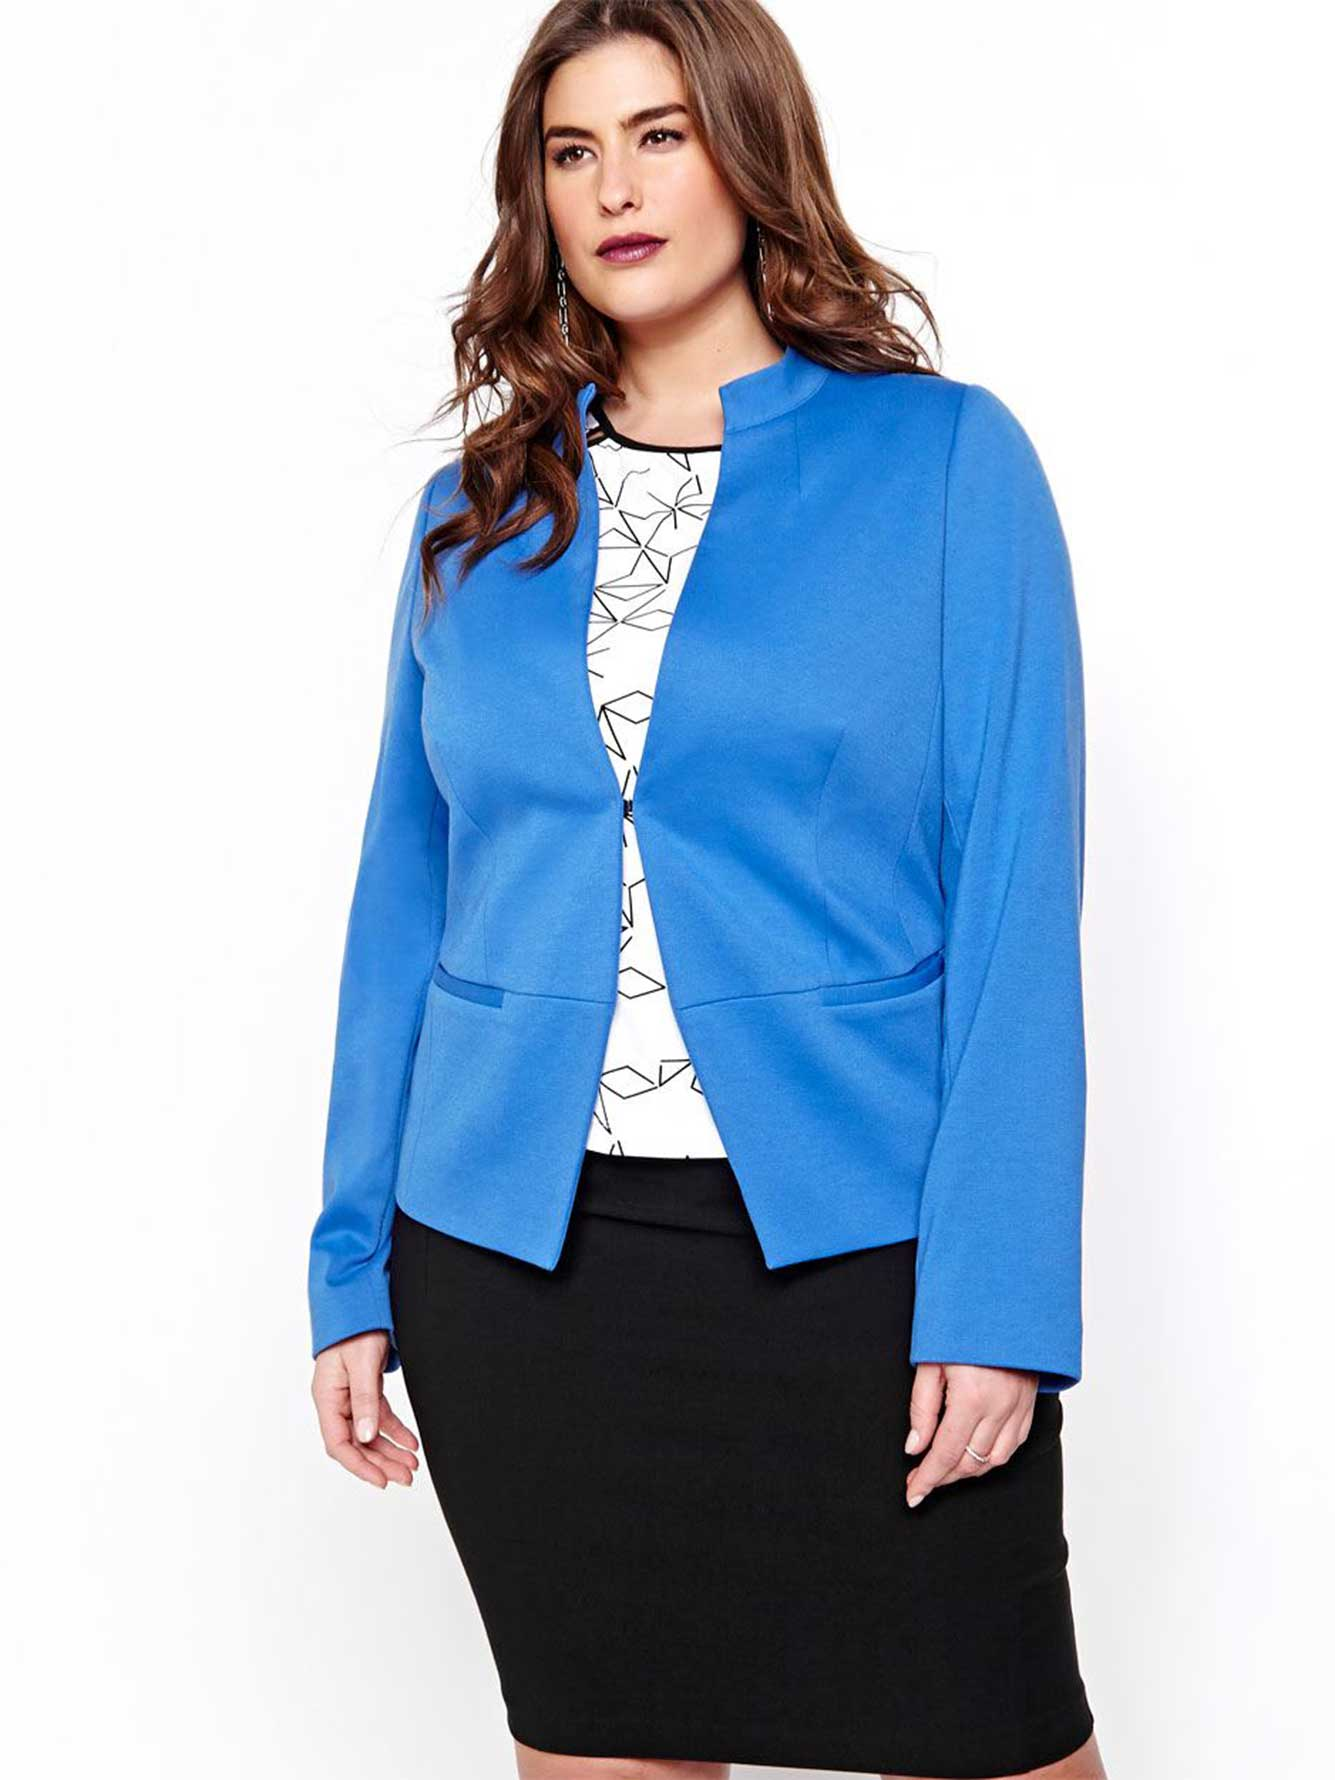 Online shopping for popular & hot Slim Fit Blazer from Men's Clothing & Accessories, Blazers, Suit Jackets, Women's Clothing & Accessories and more related Slim Fit Blazer like slim fit tweed, tweed slim fit, homens slim fit blazer, jeans slim fit. Discover over of the best Selection Slim Fit Blazer on arifvisitor.ga